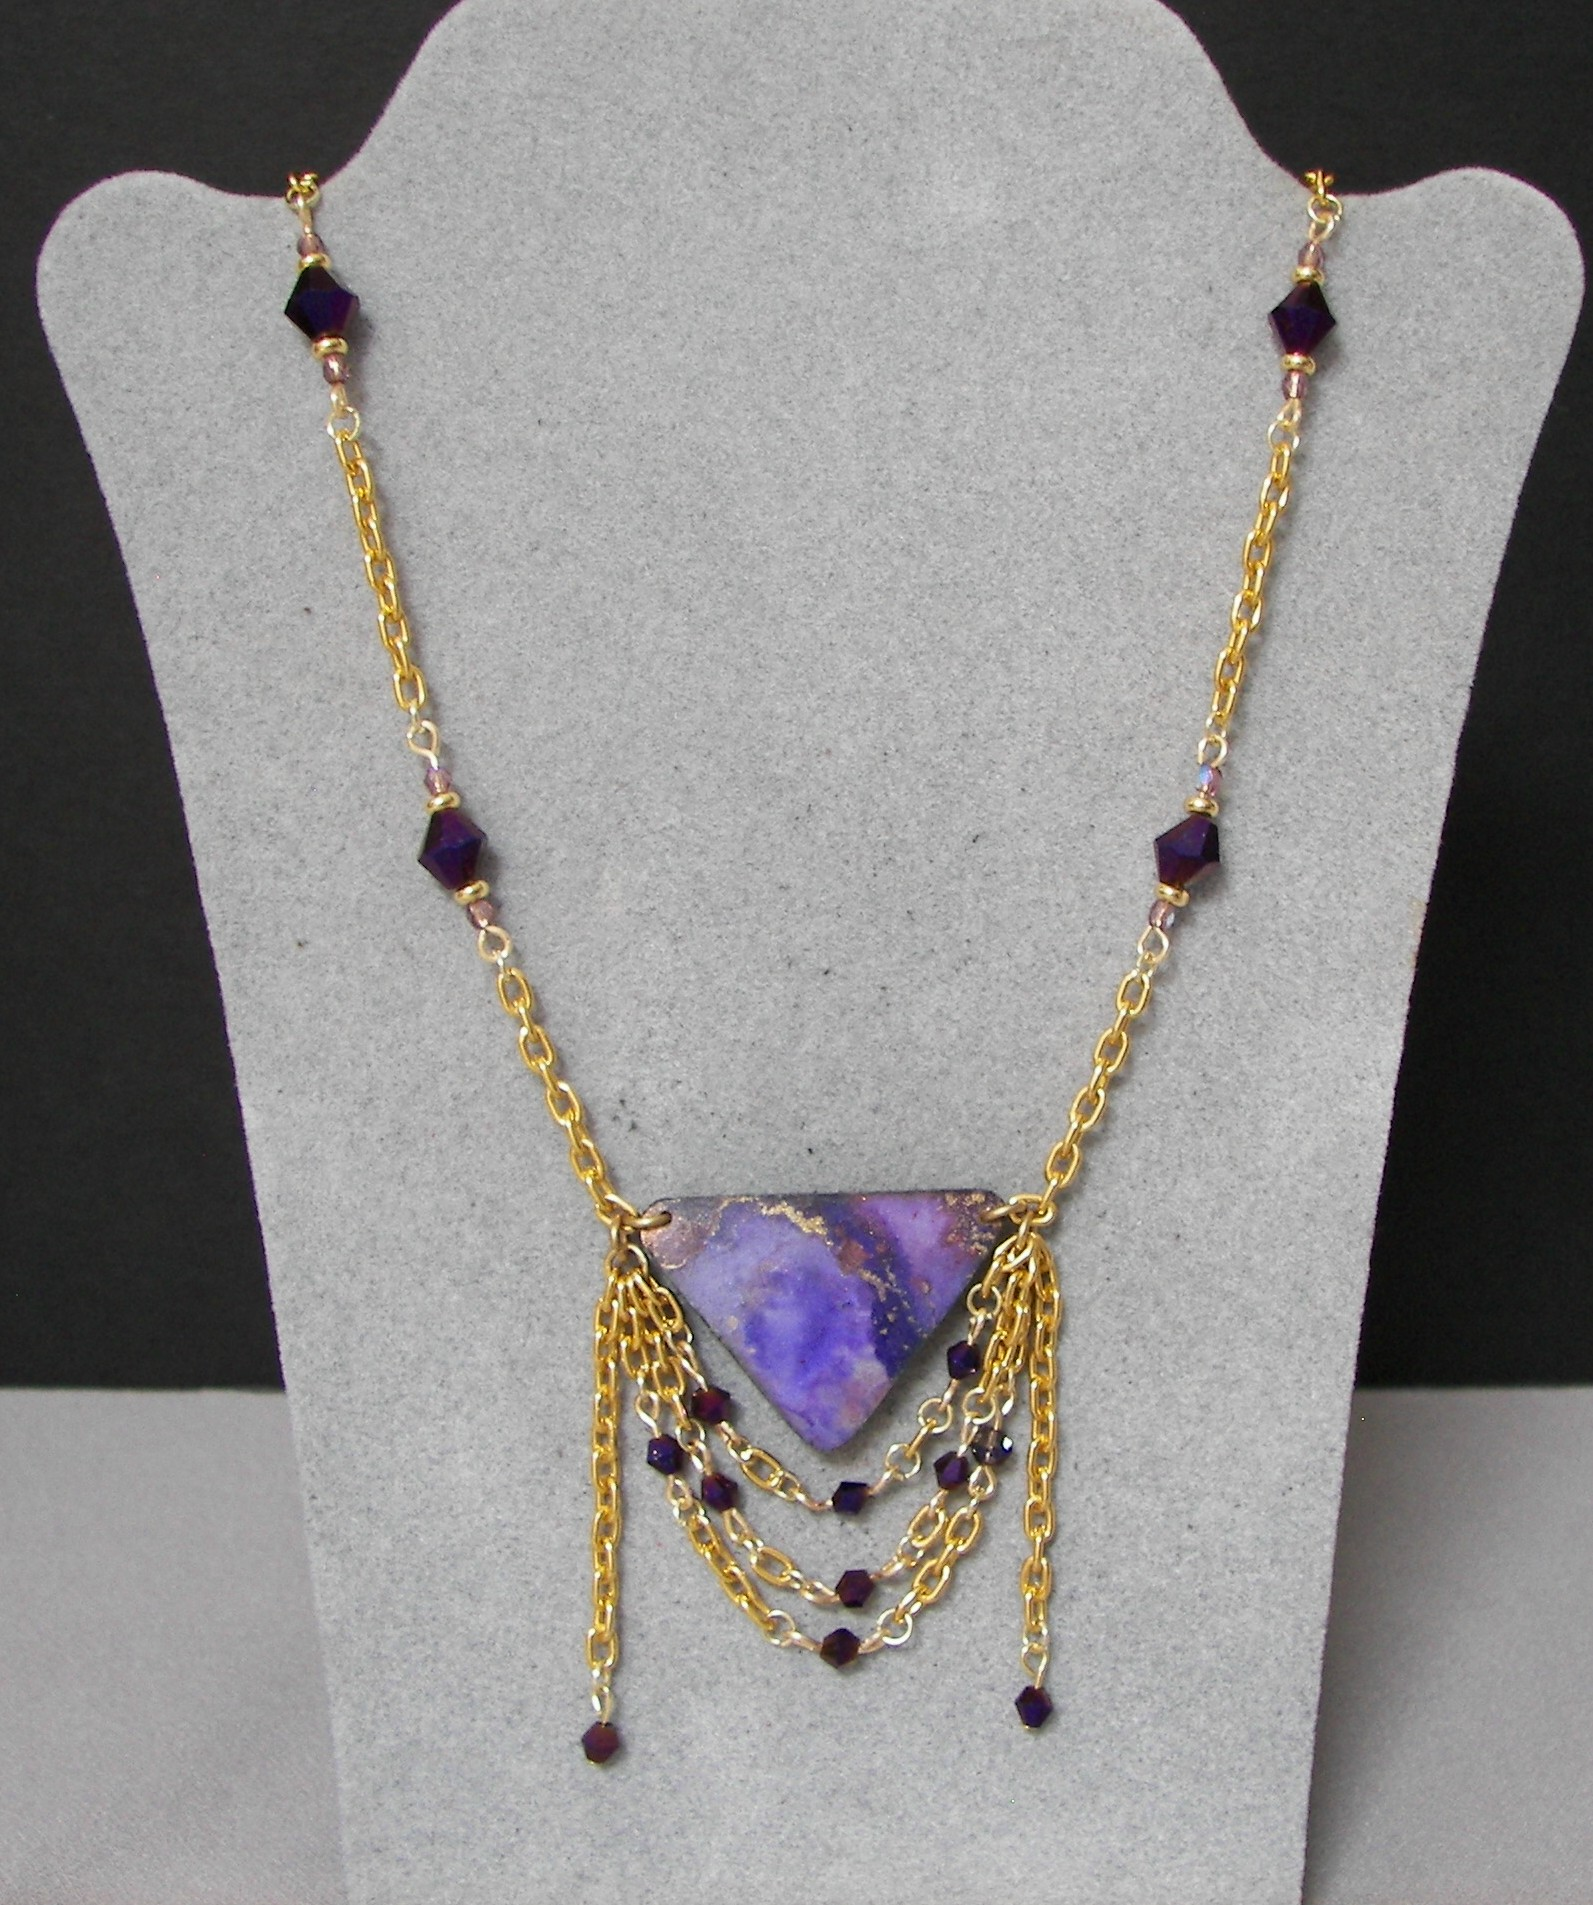 alcohol-ink-necklace-purple-and-gold-chain